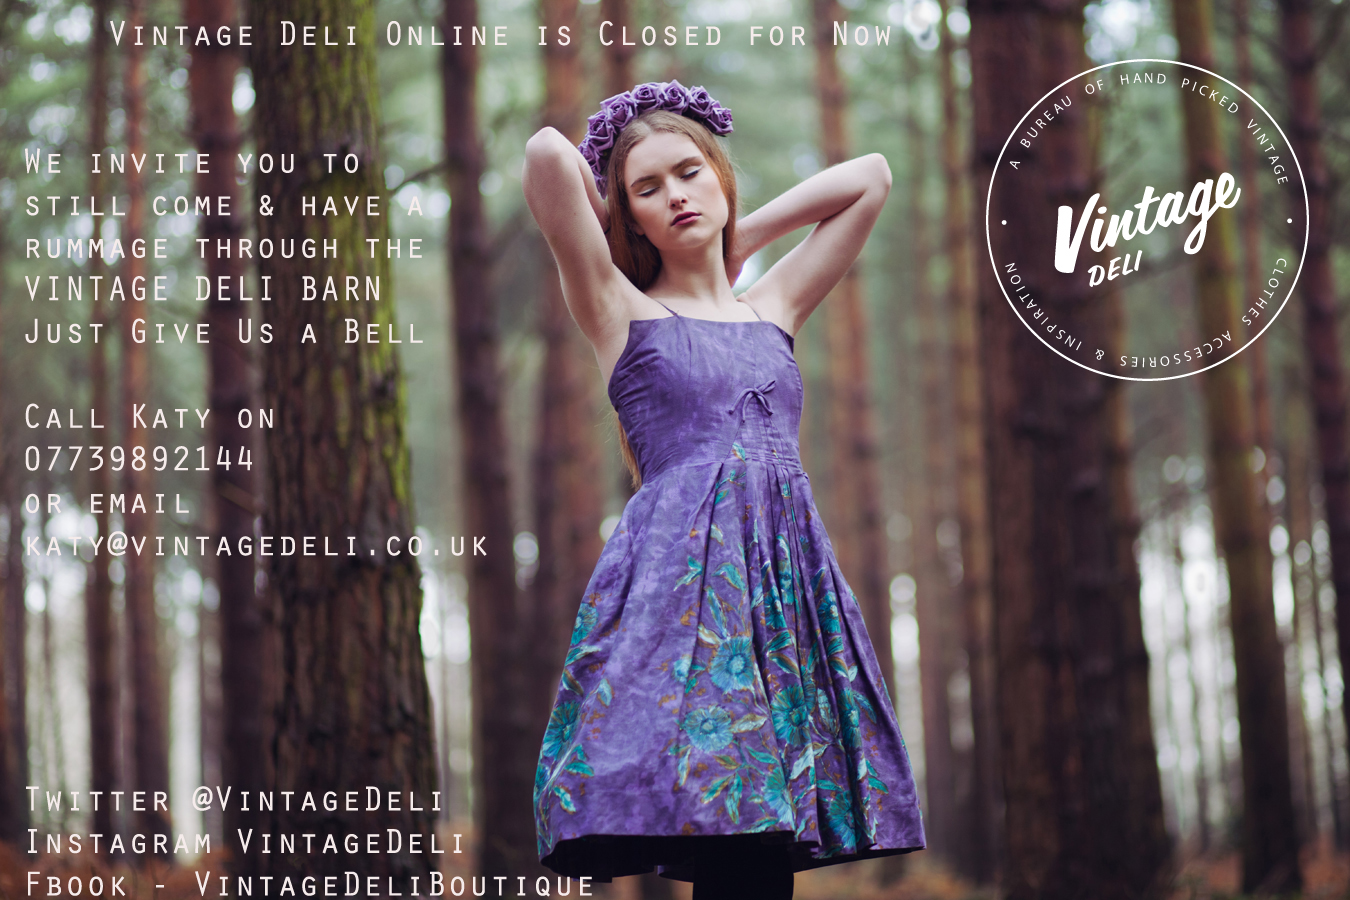 Online Vintage Clothing Shops